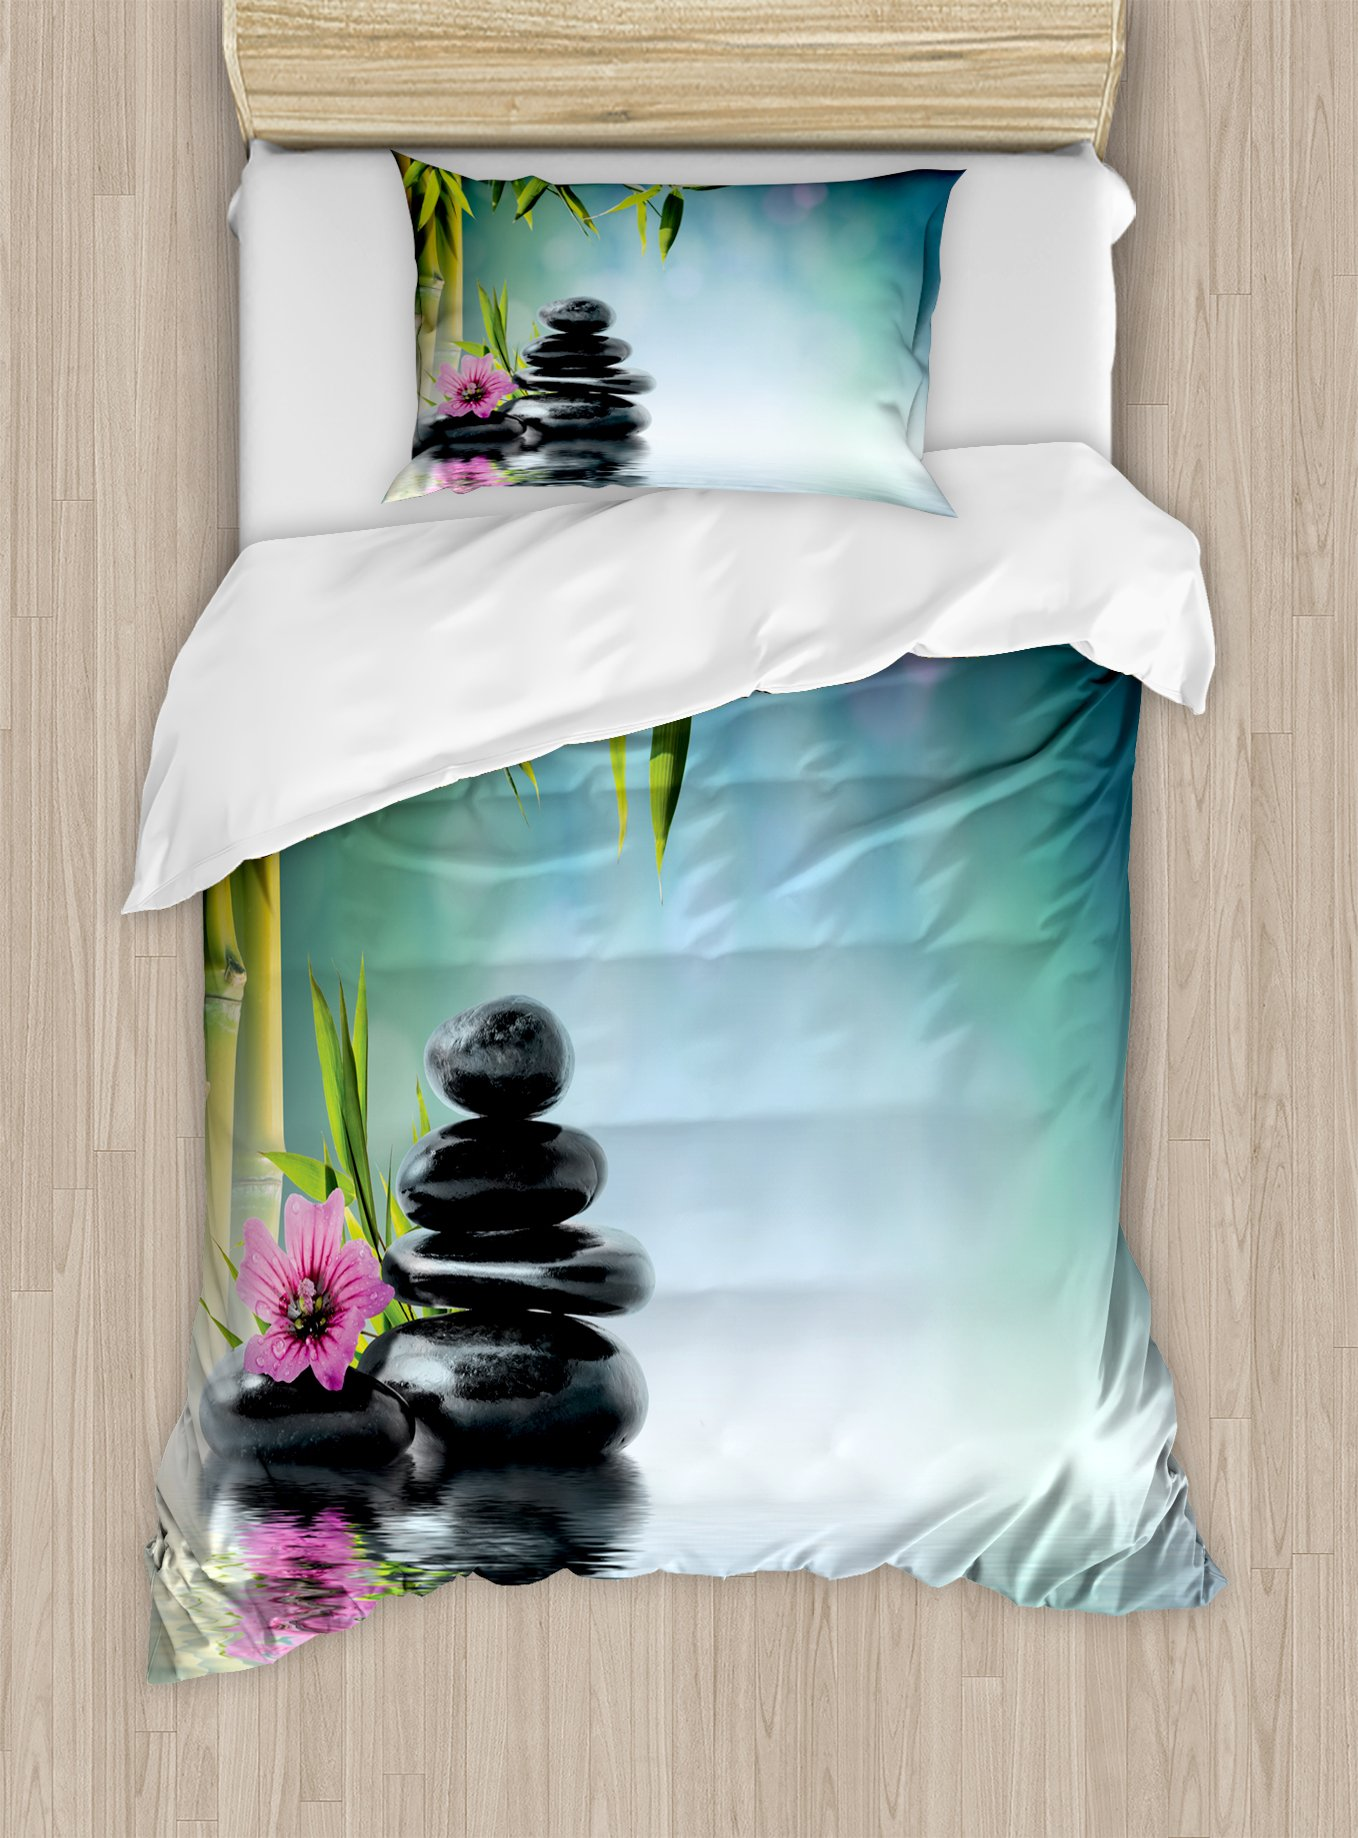 Ambesonne Spa Duvet Cover Set Twin Size, Tower Stone and Hibiscus with Bamboo on The Water Blurry Background, Decorative 2 Piece Bedding Set with 1 Pillow Sham, Petrol Blue Fuchsia Lime Green